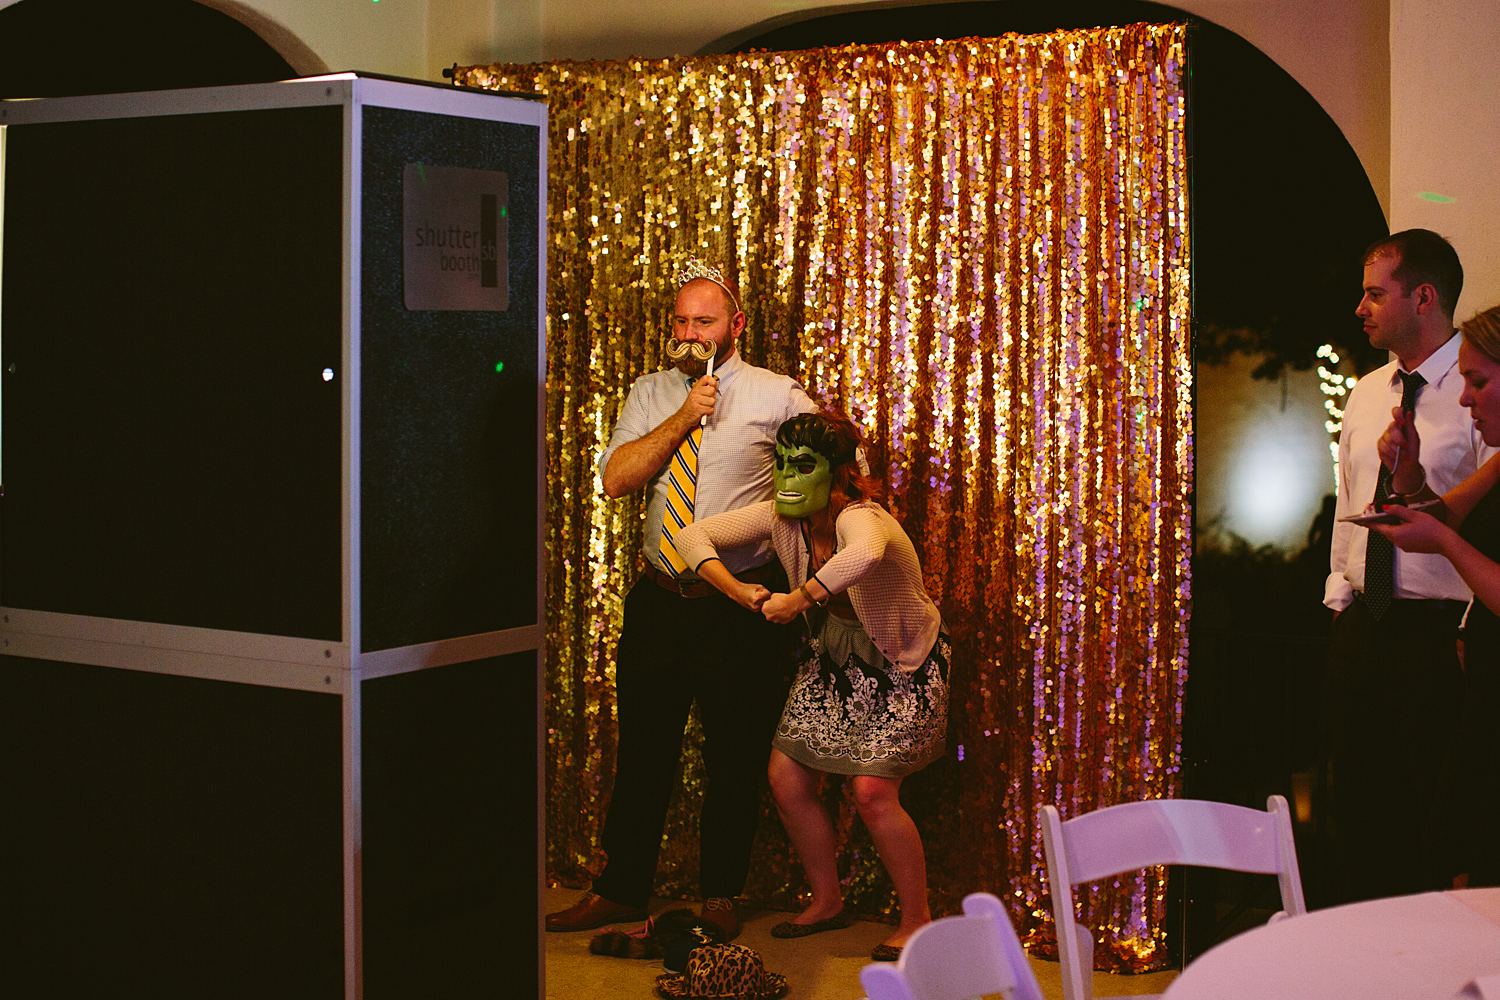 jeremy-russell-lake-lure-wedding-15-64.jpg